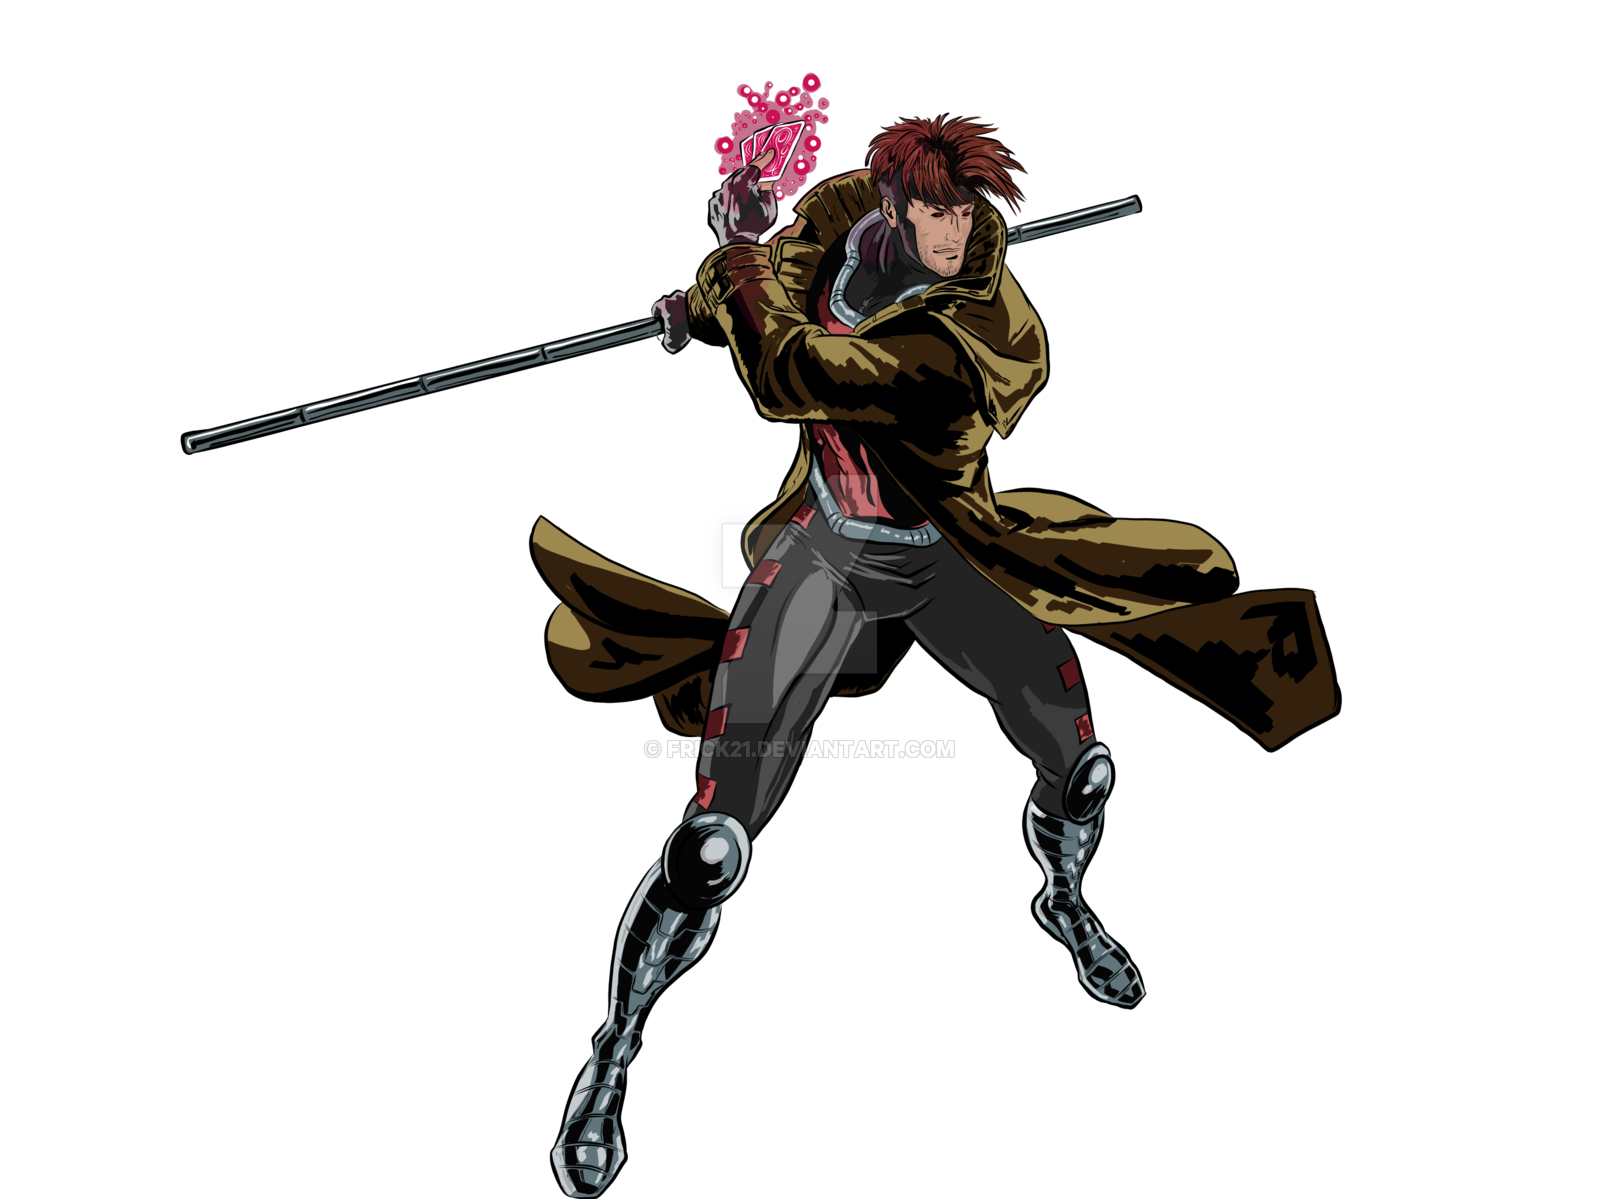 Weapon drawing avengers. Gambit digital by frick